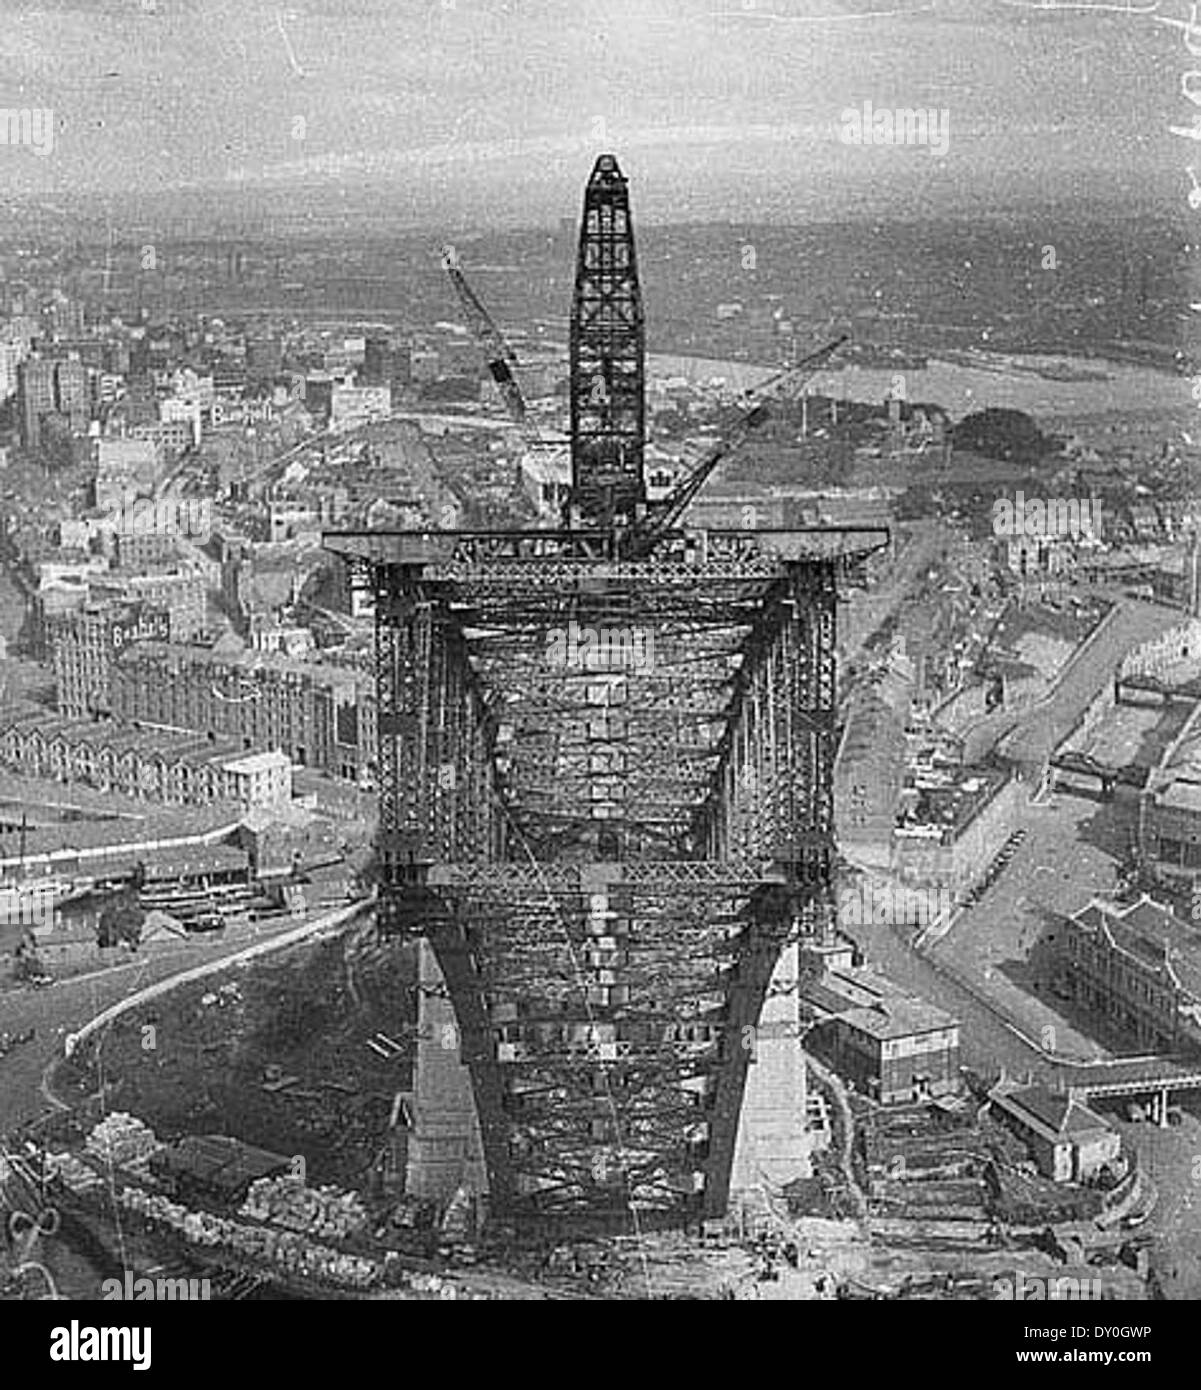 View from pulley-wheels of north side creeper-crane (jibbed right out) looking into box section of south side arch, Sydney Harbour Bridge, May 1930 / Ted Hood (hanging upside down 130 metres - 420 feet - above the harbour.) - Stock Image